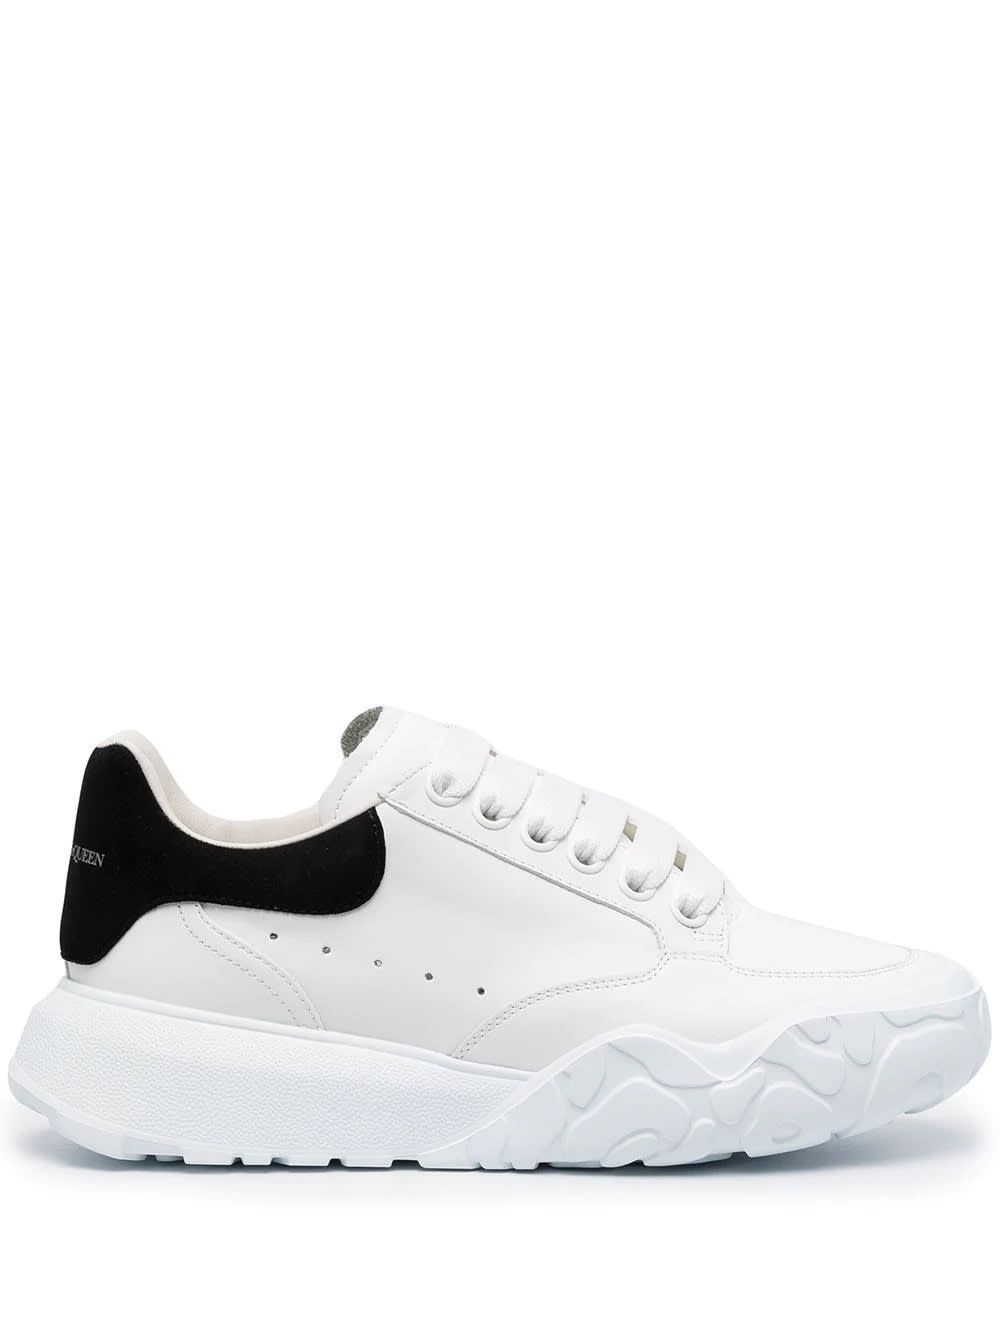 Alexander McQueen Woman White And Black Trainer Court Oversize Sneakers